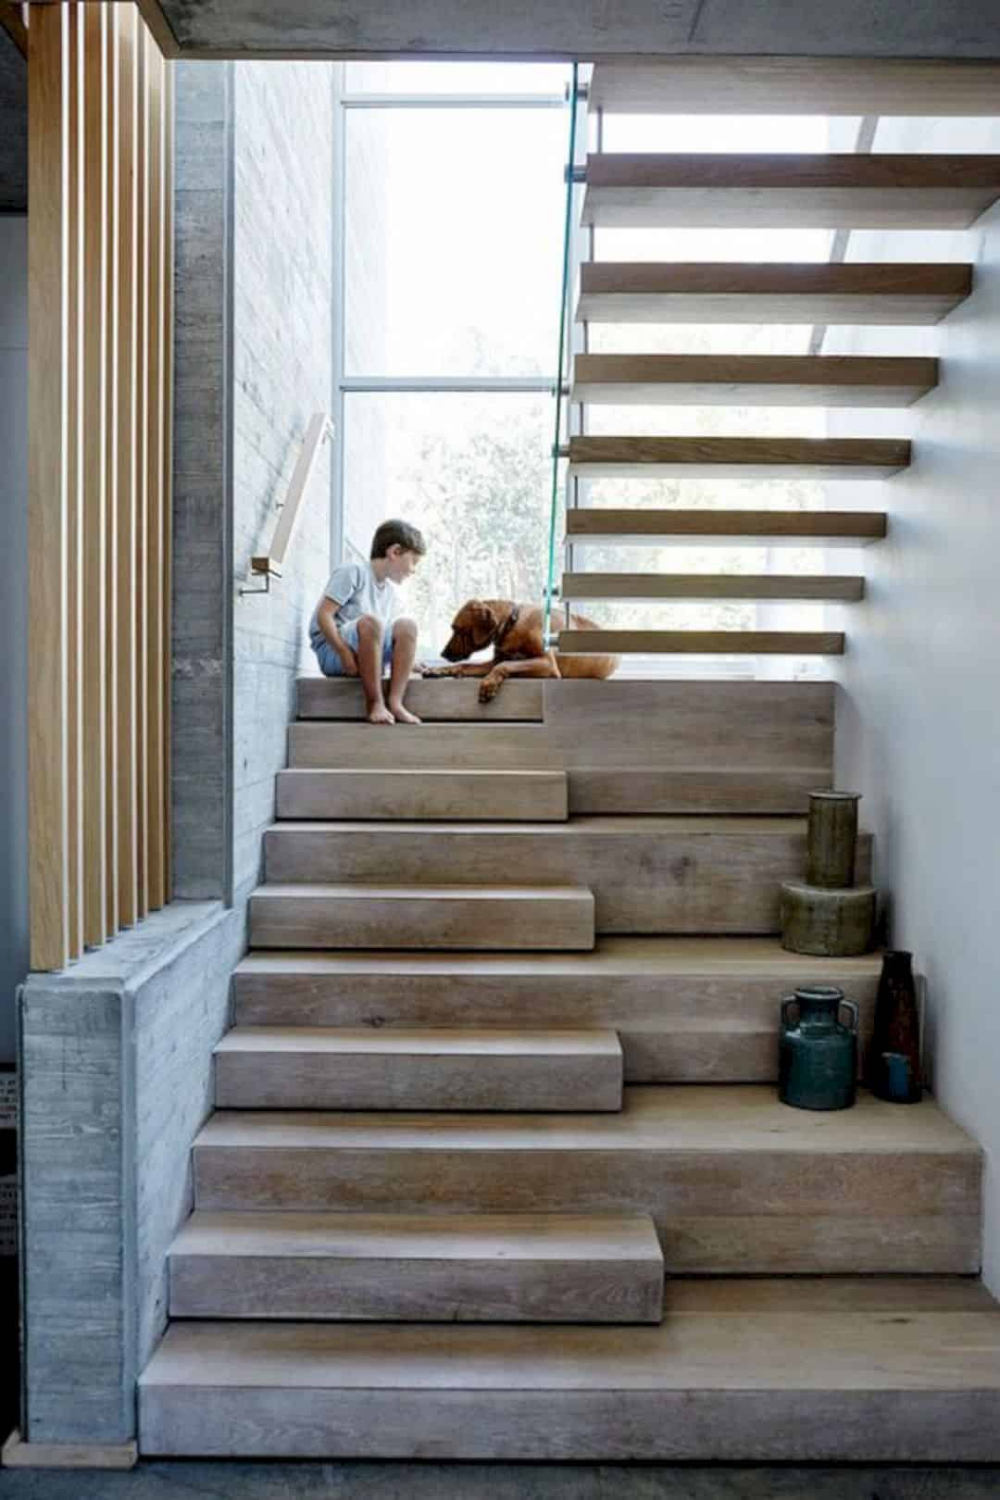 16 Super Cool Concrete Staircase Ideas Concrete Staircase | Concrete Ladder Design For Home | Low Budget | Beautiful | Construction | Small Space | Simple